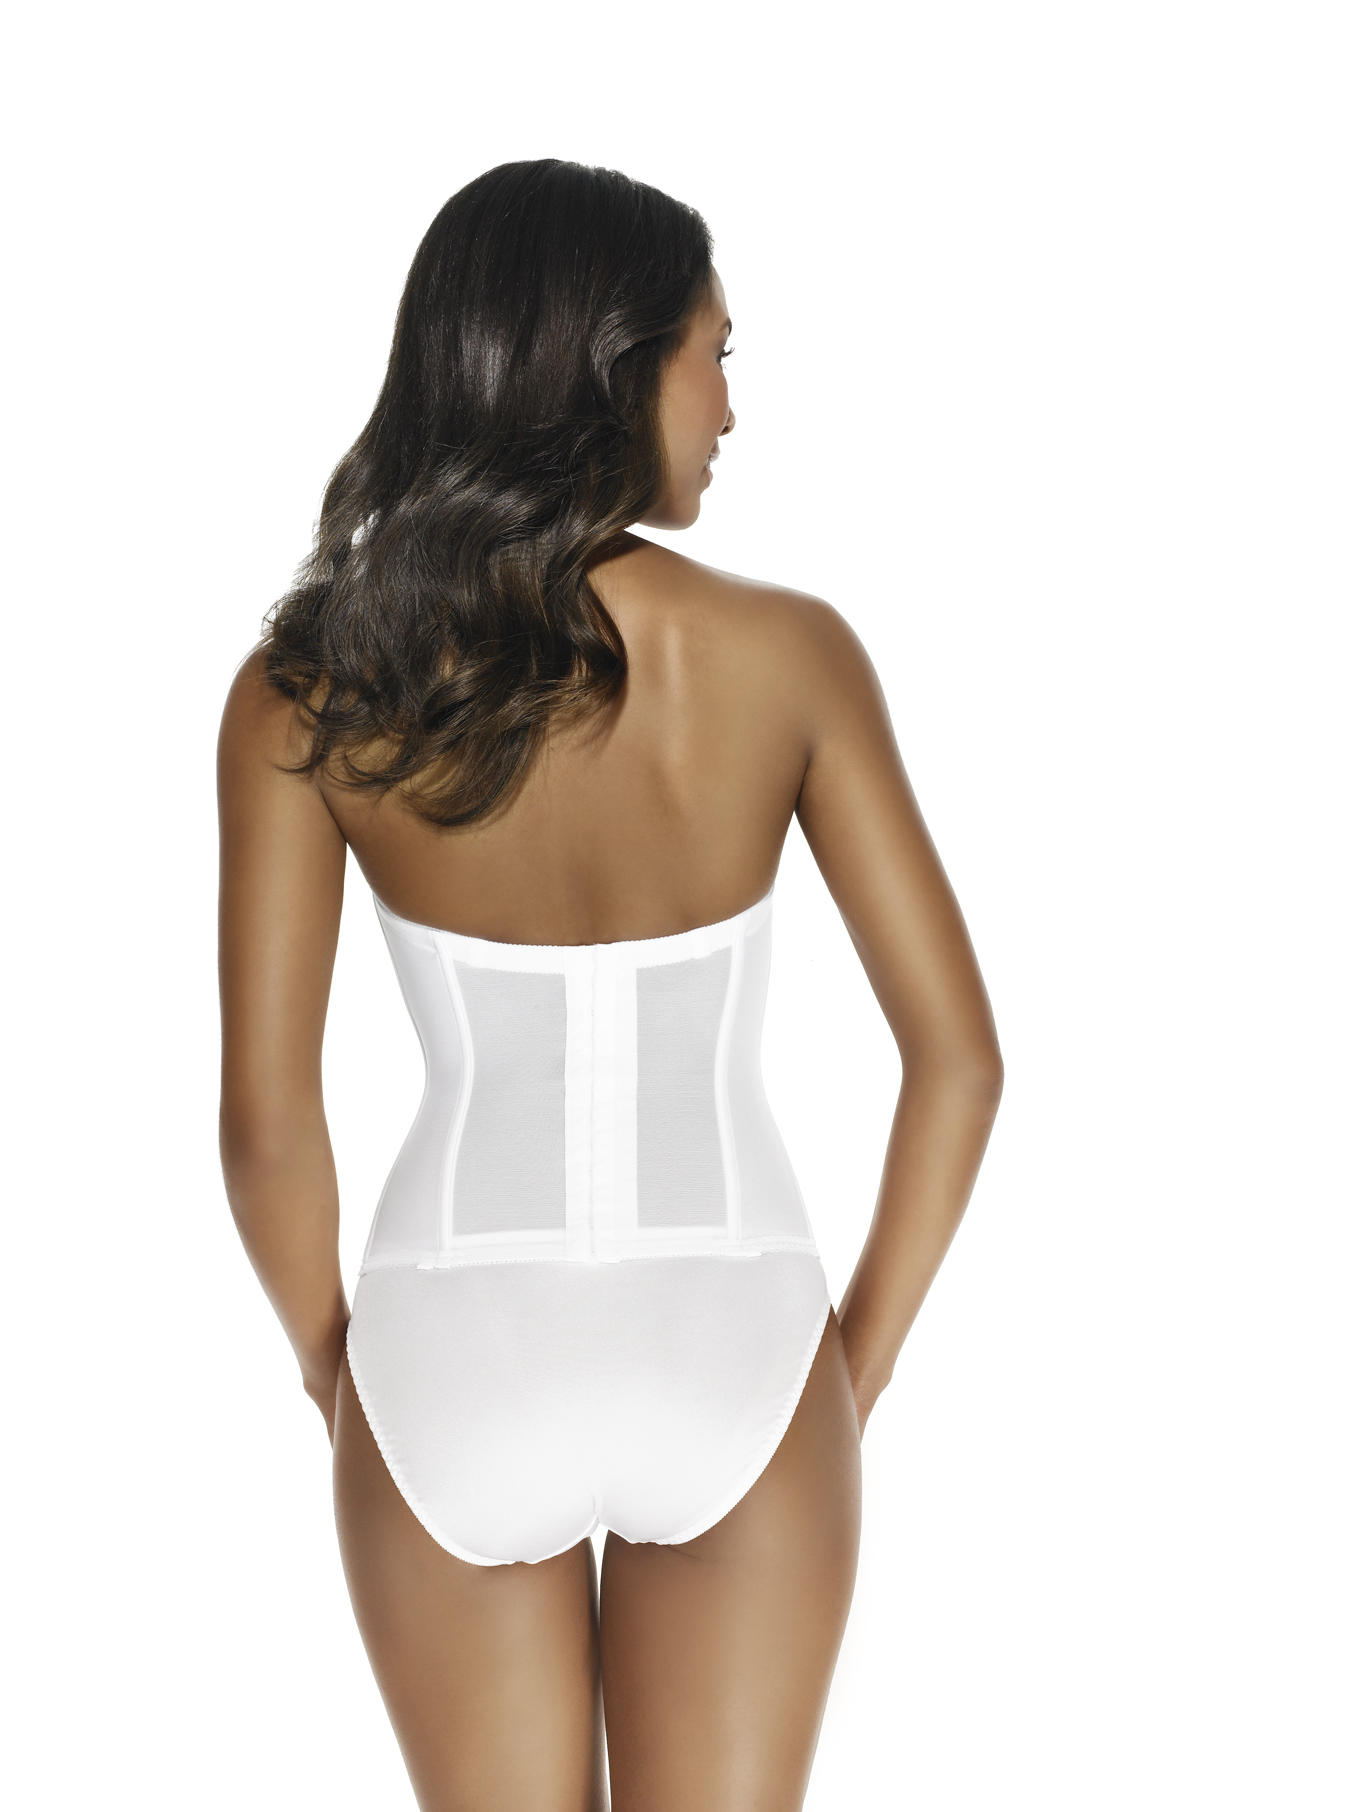 Bride's low back basque